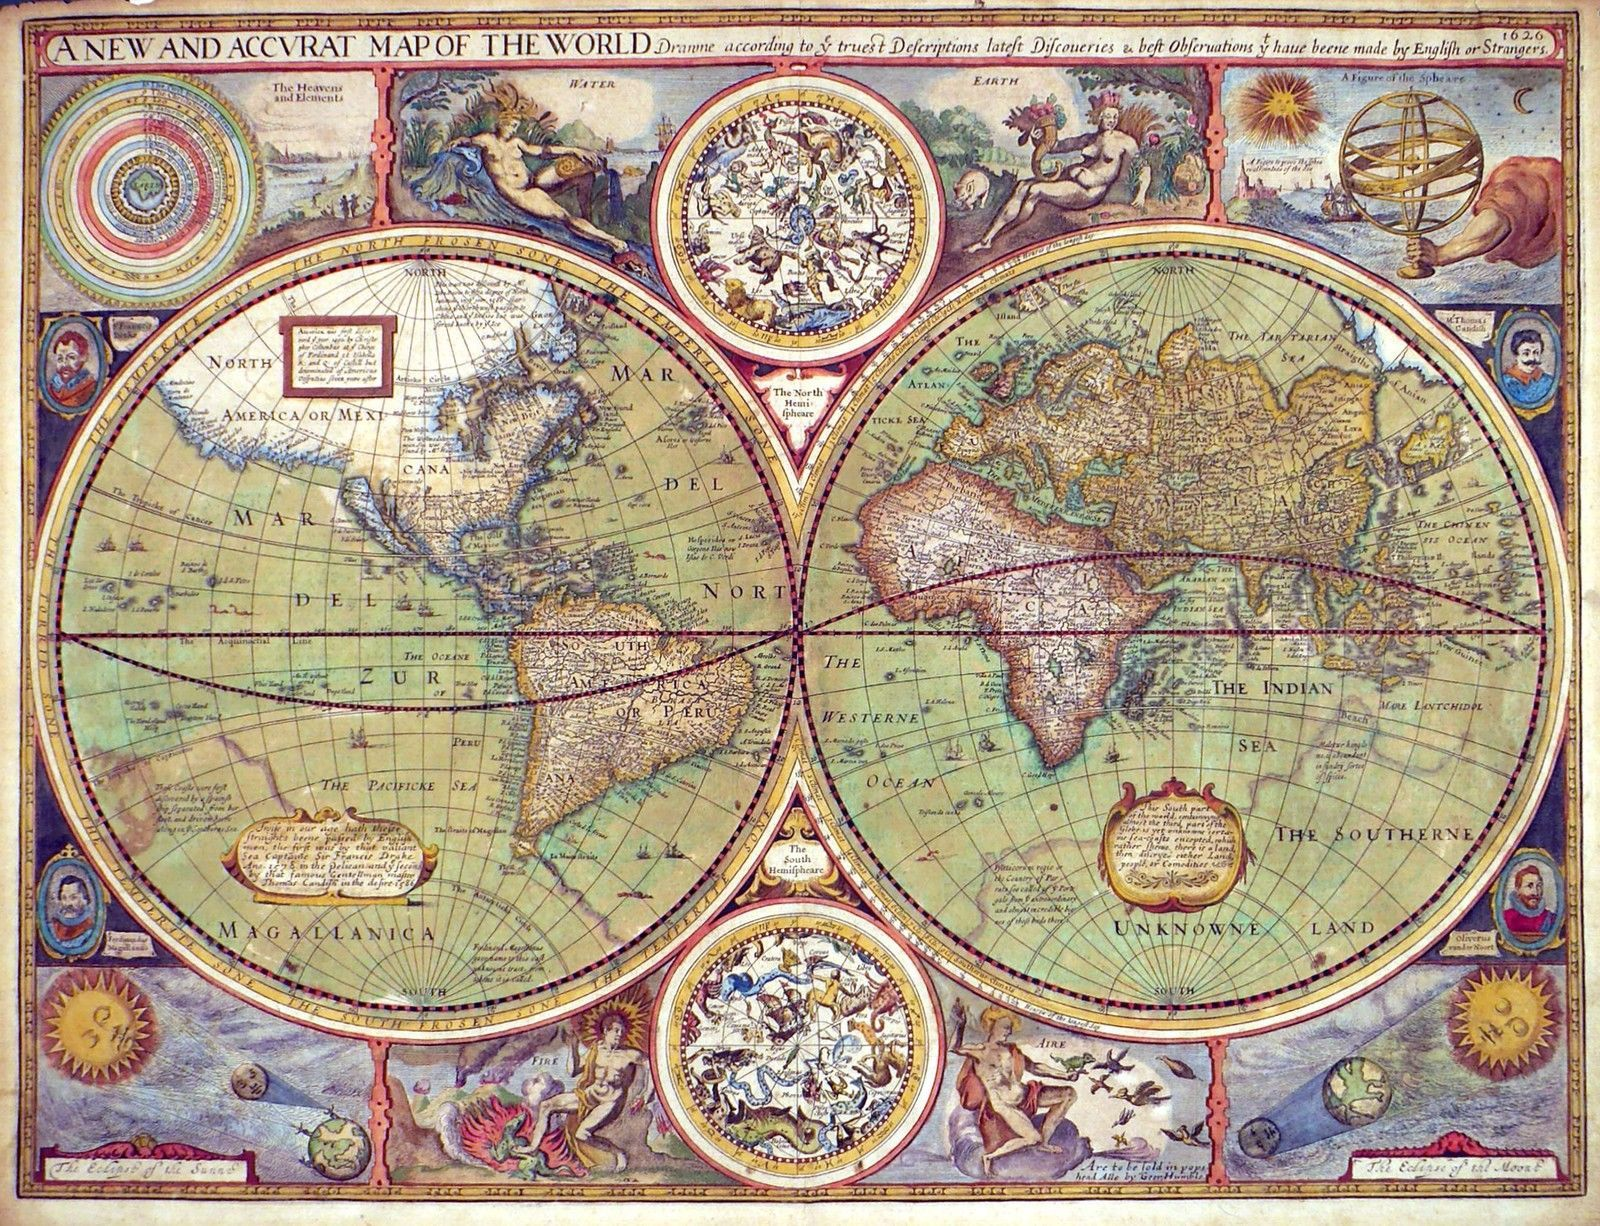 Maps ebay world map blog with collection of maps all around the ebay world map dcfbfacebfbbcbd gumiabroncs Gallery